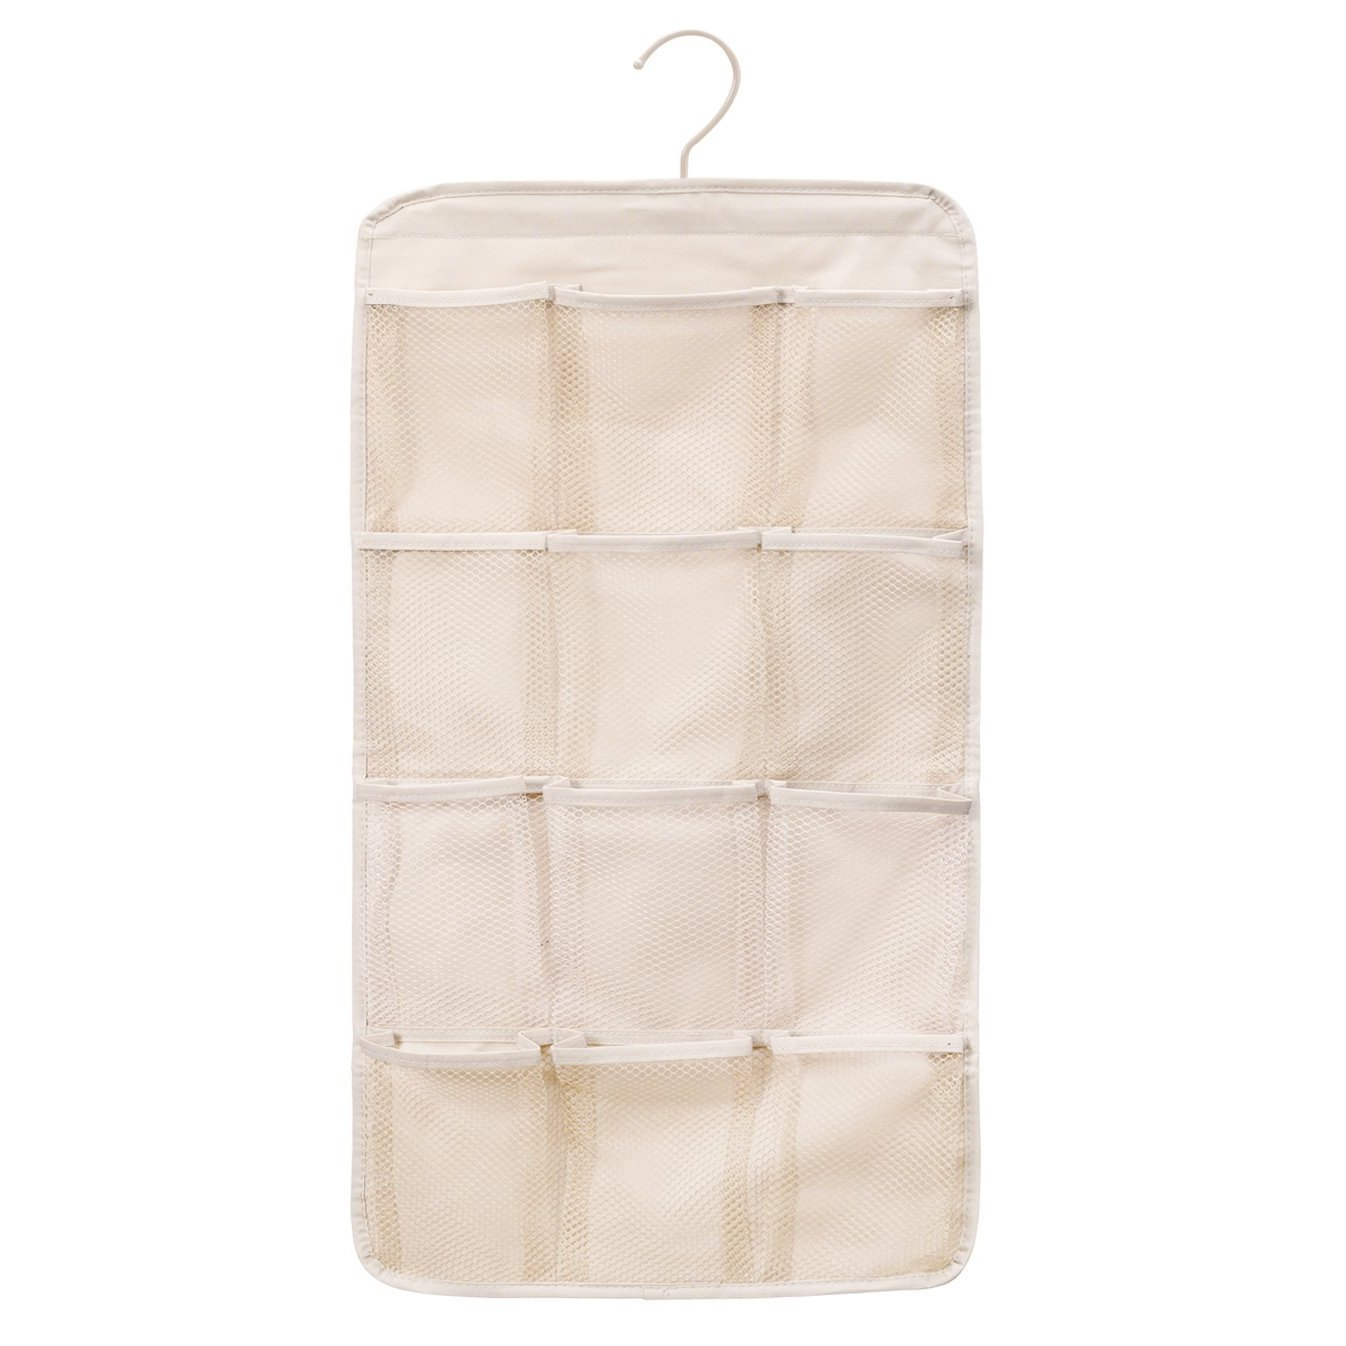 a9297de97600 StorageManiac Durable Hanging Organizer, Double-sided Storage Bag with 12  Mesh Pockets and 2 PPE Pockets